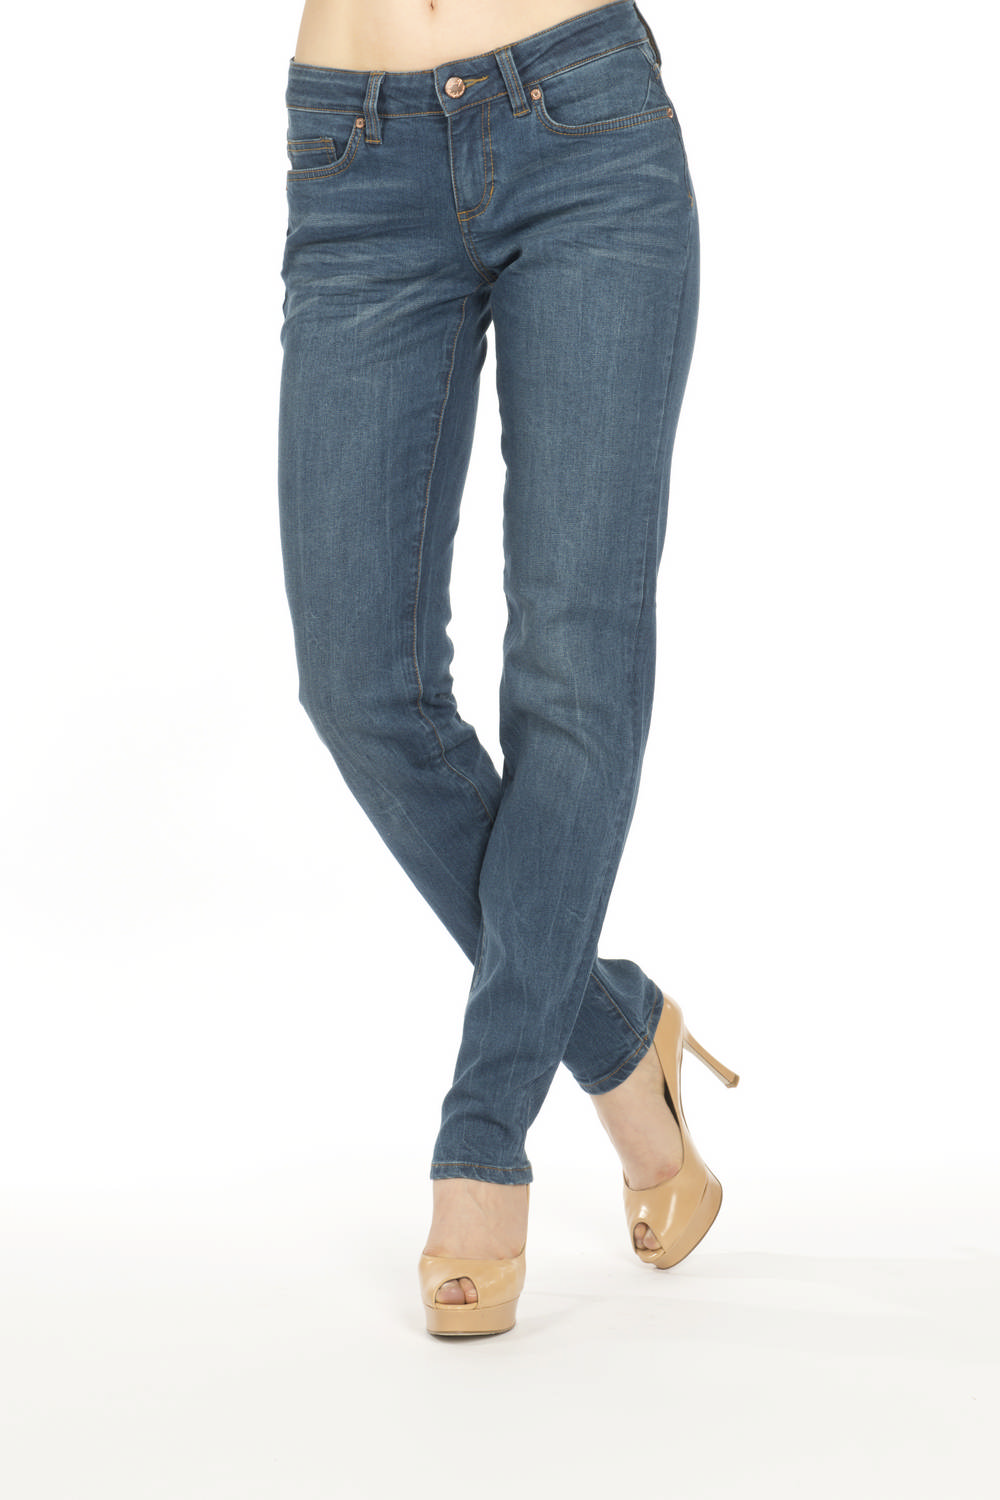 Seven 7 Jeans 2014 Collection for Women- Fashion Fist (2) - Fashion Fist